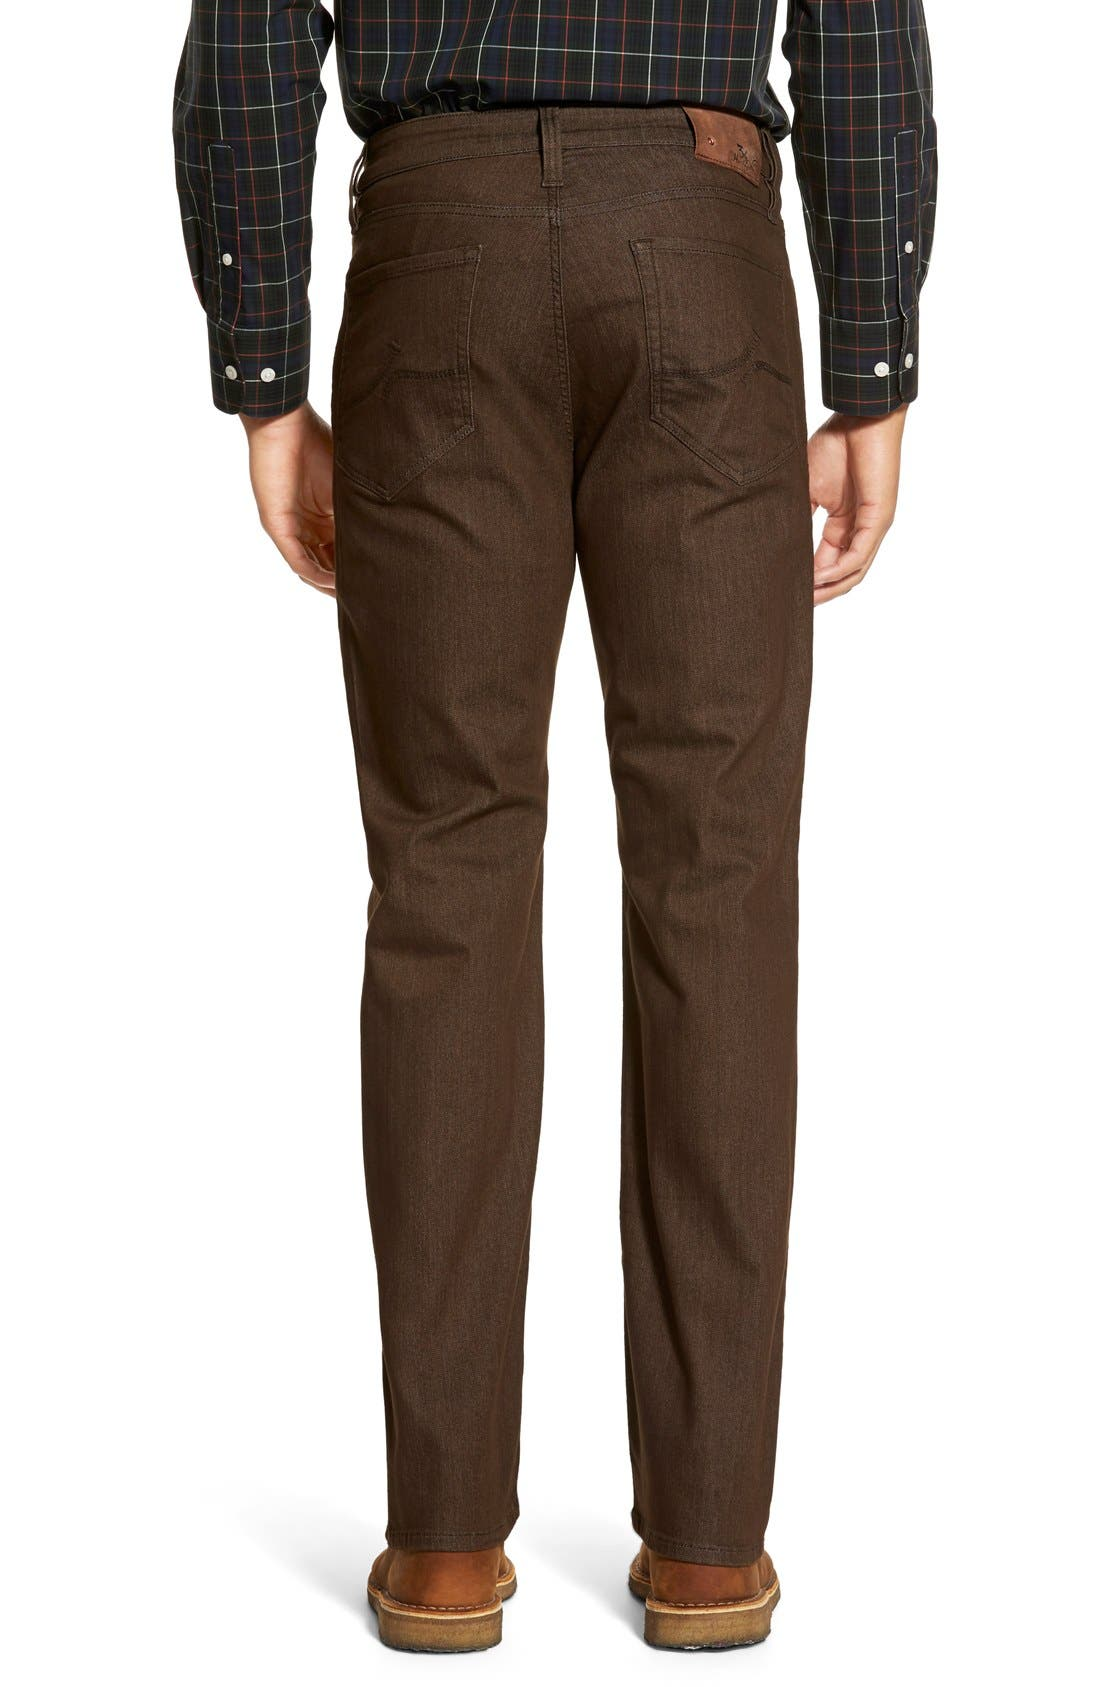 'Charisma' Relaxed Fit Jeans,                             Alternate thumbnail 6, color,                             Brown Comfort